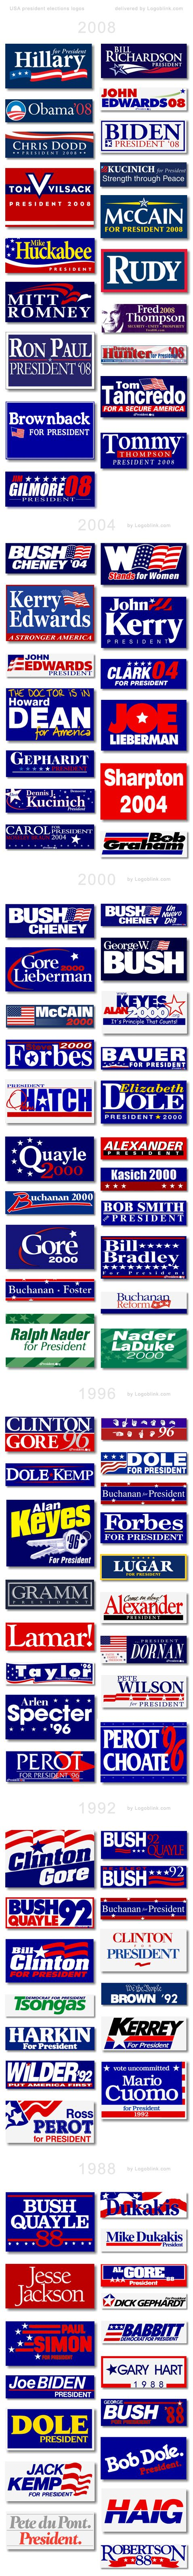 political logos - Google Search